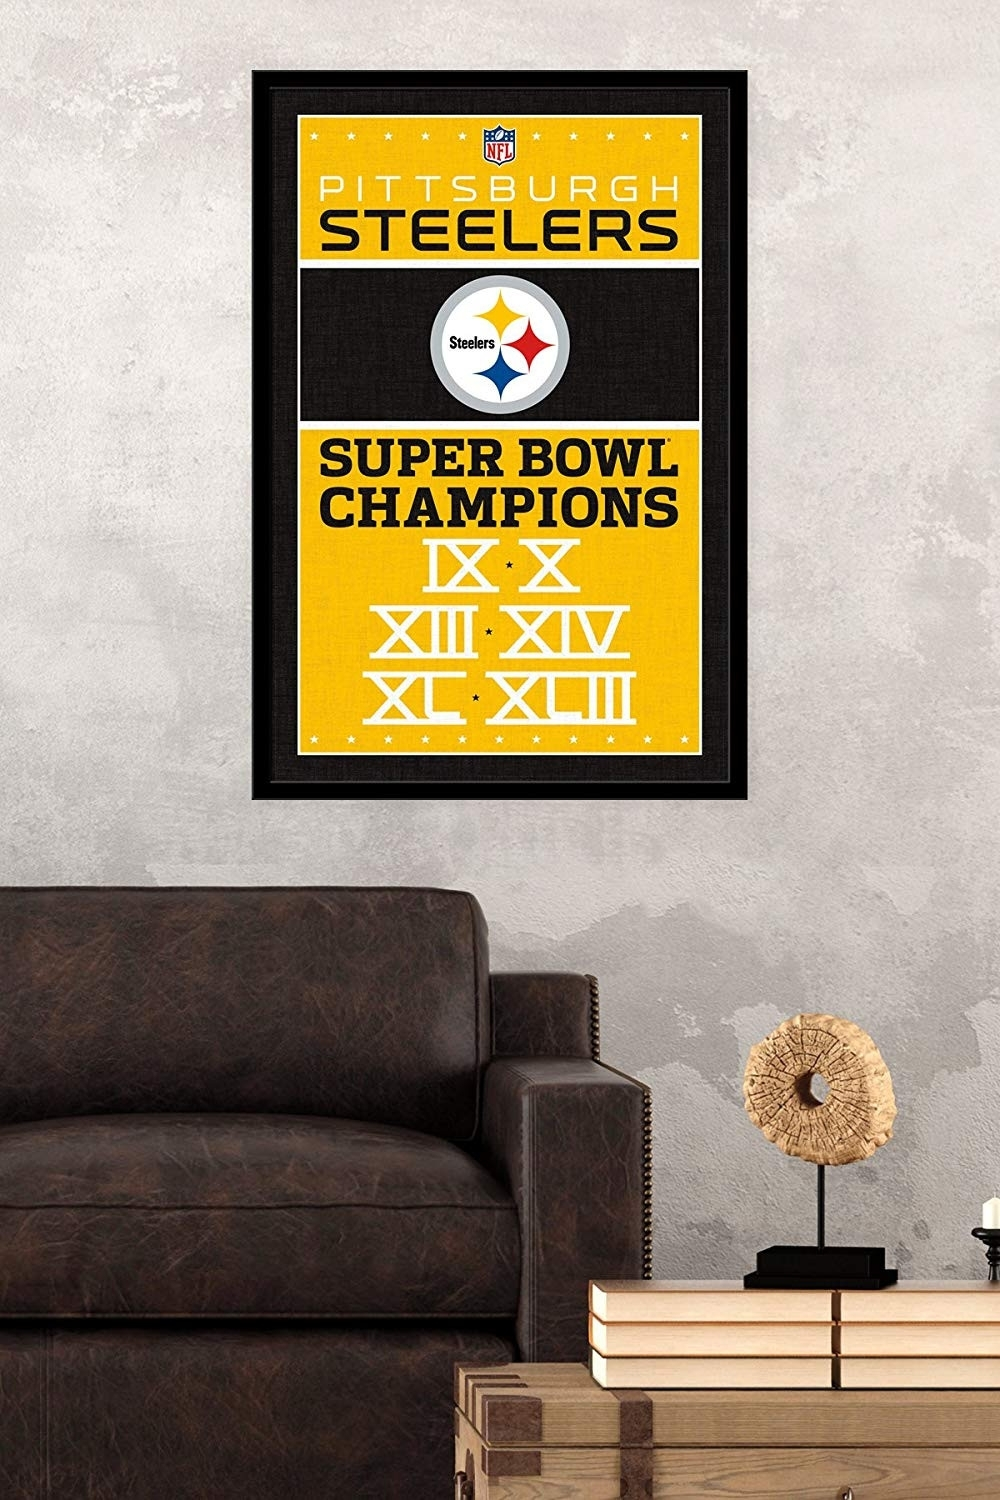 25 Unique Pittsburgh Steelers Wall Art | Mehrgallery With Regard To Most Popular Nfl Wall Art (View 3 of 15)